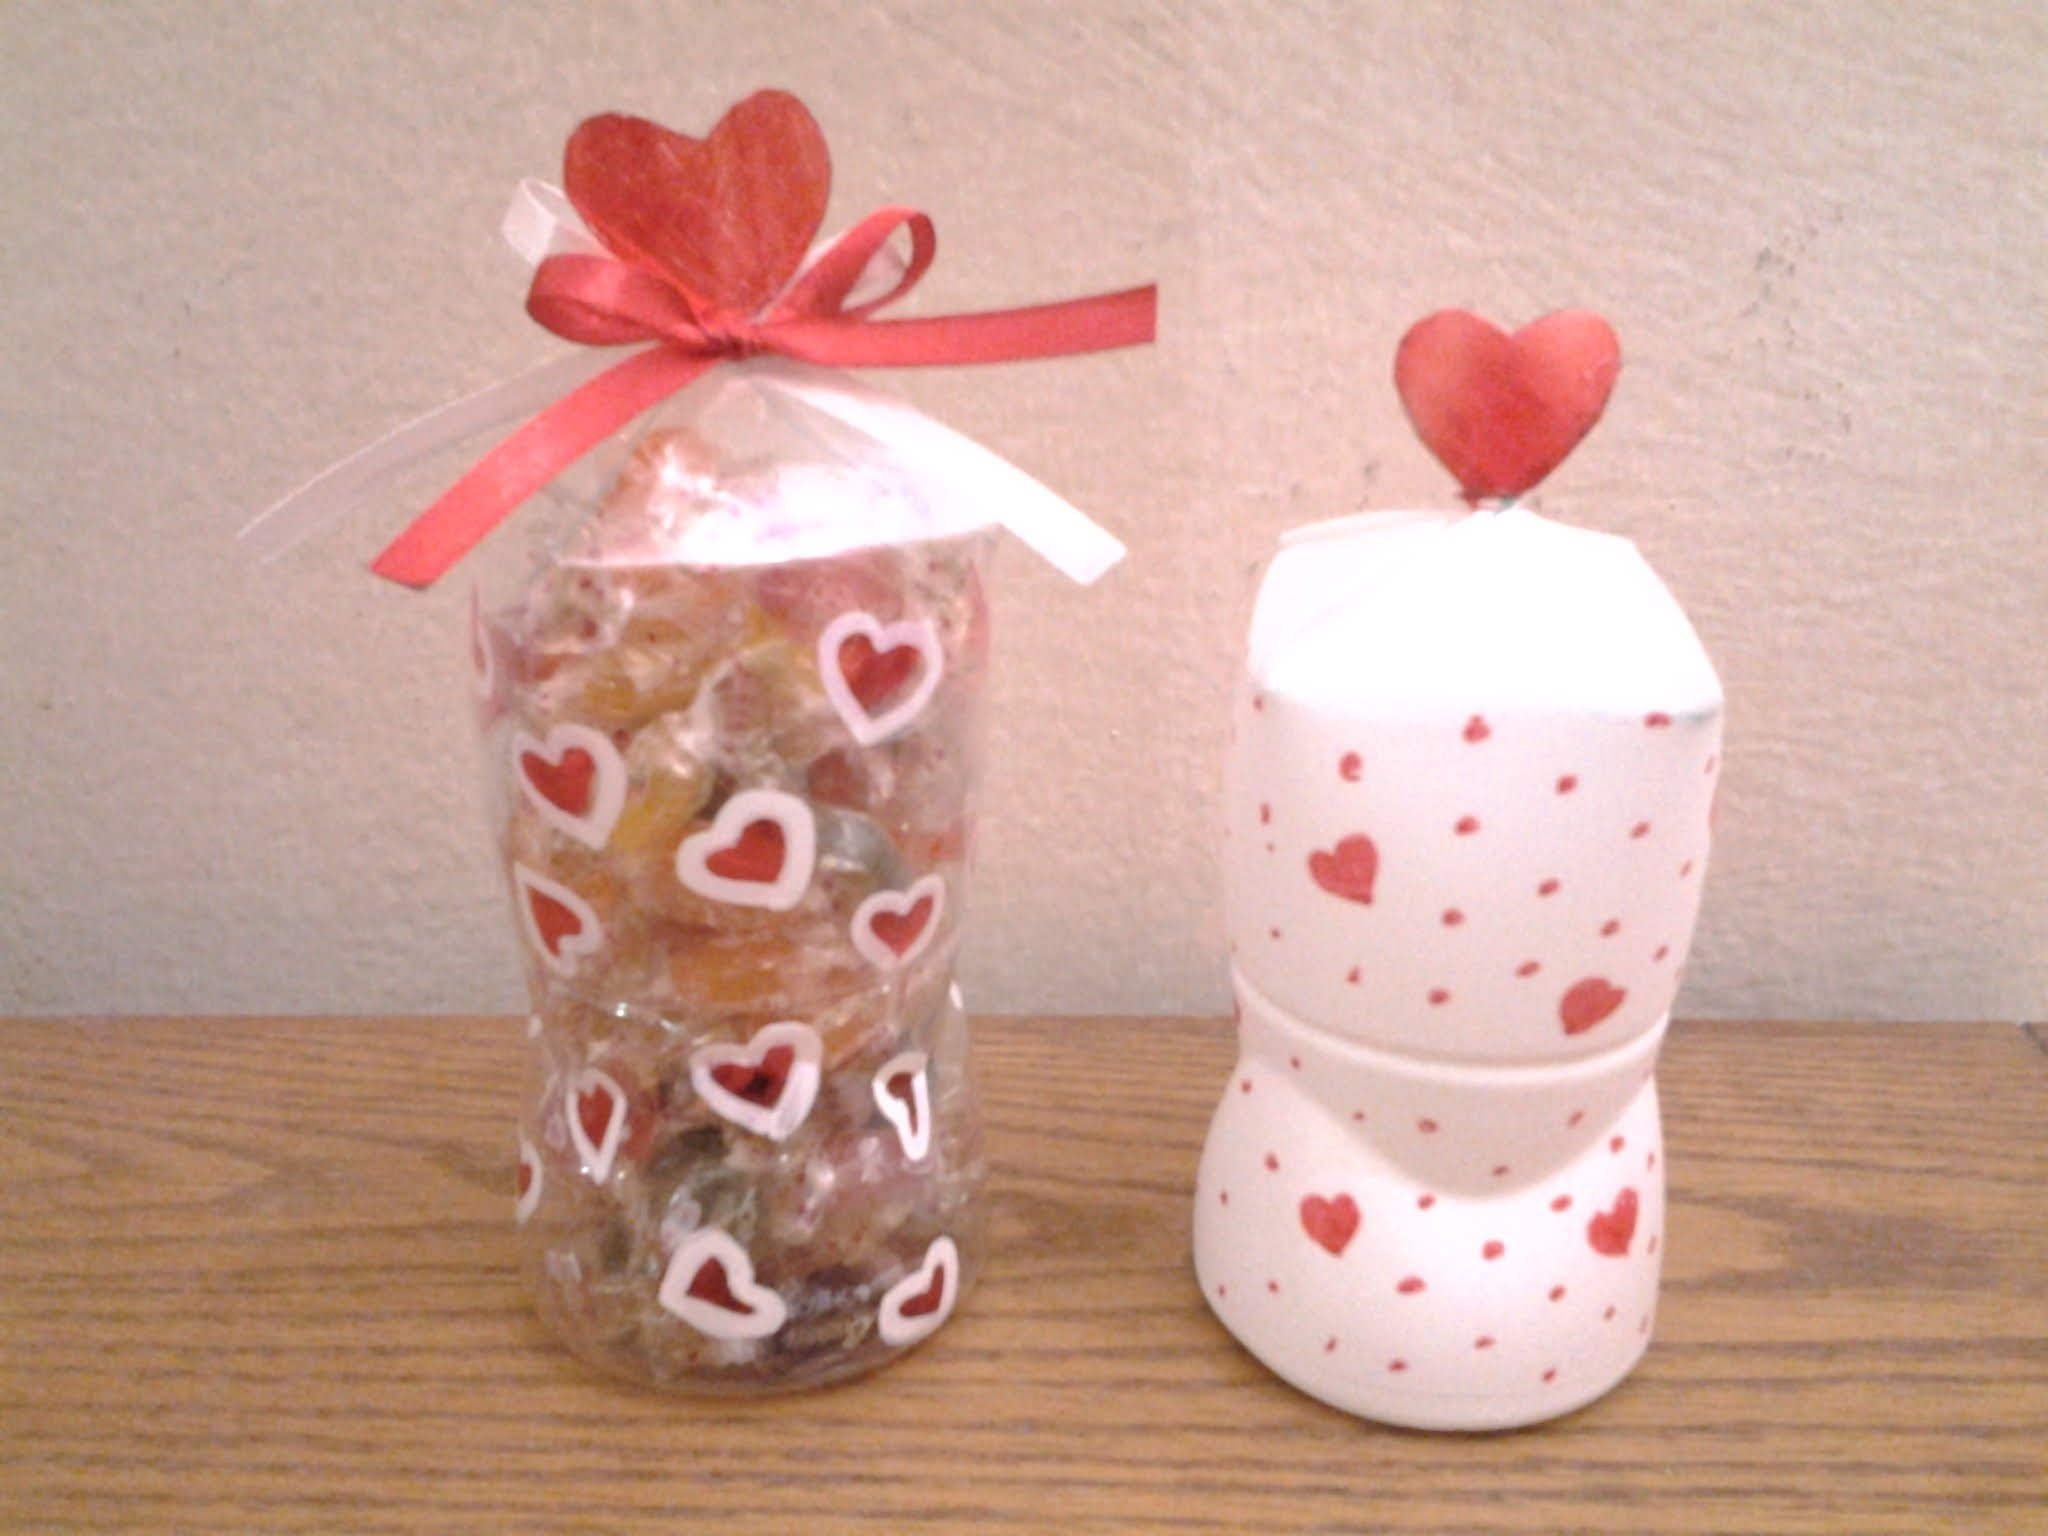 Best out of waste plastic bottle transformed to gift for Diy ideas for best out of waste